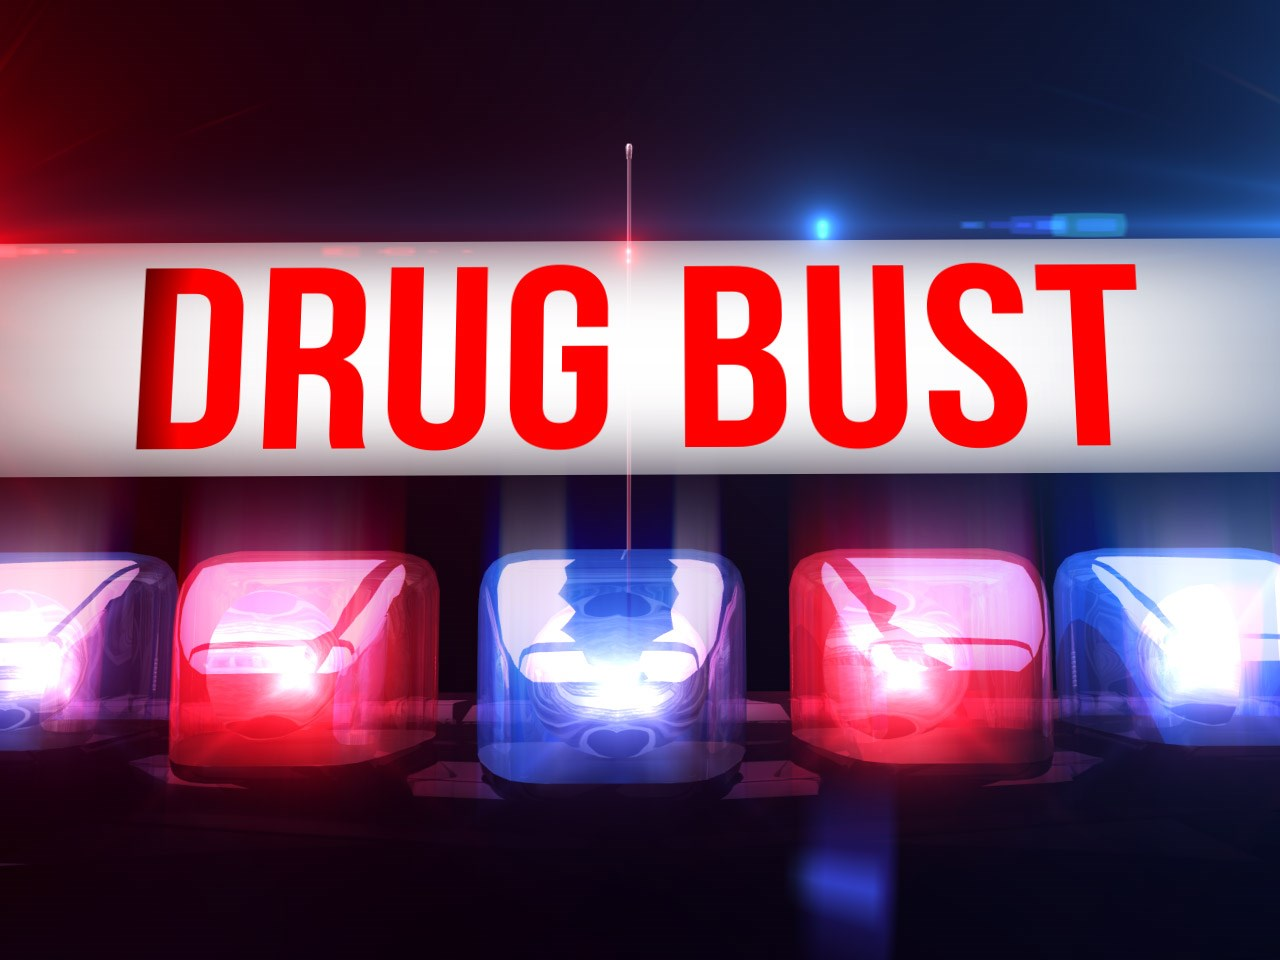 More than 2 dozen arrested in